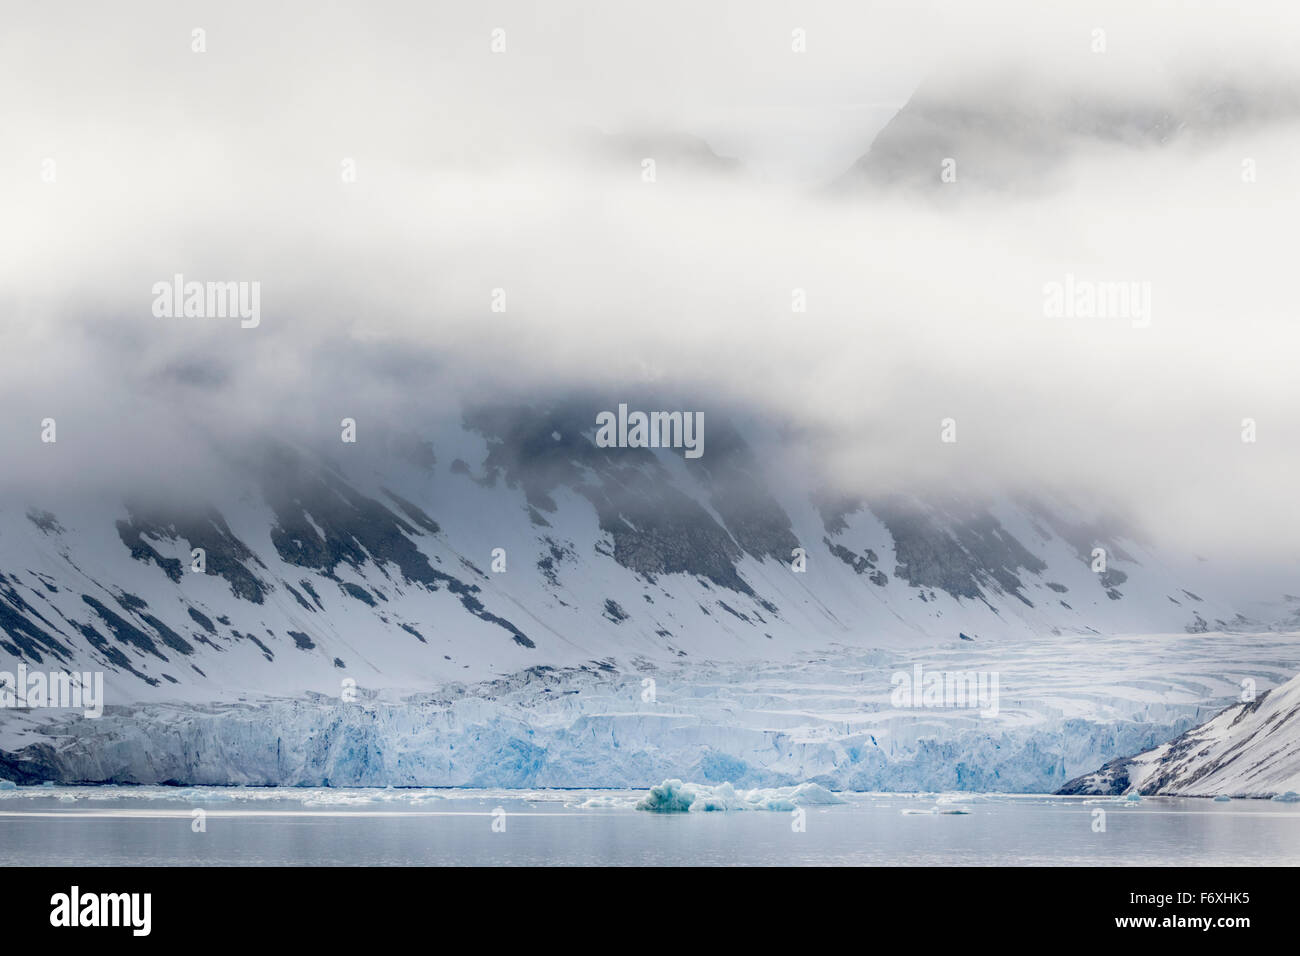 Magdalenenfjord, view over the glacial arms, Svalbard, Spitzbergen, Norway, Europe - Stock Image